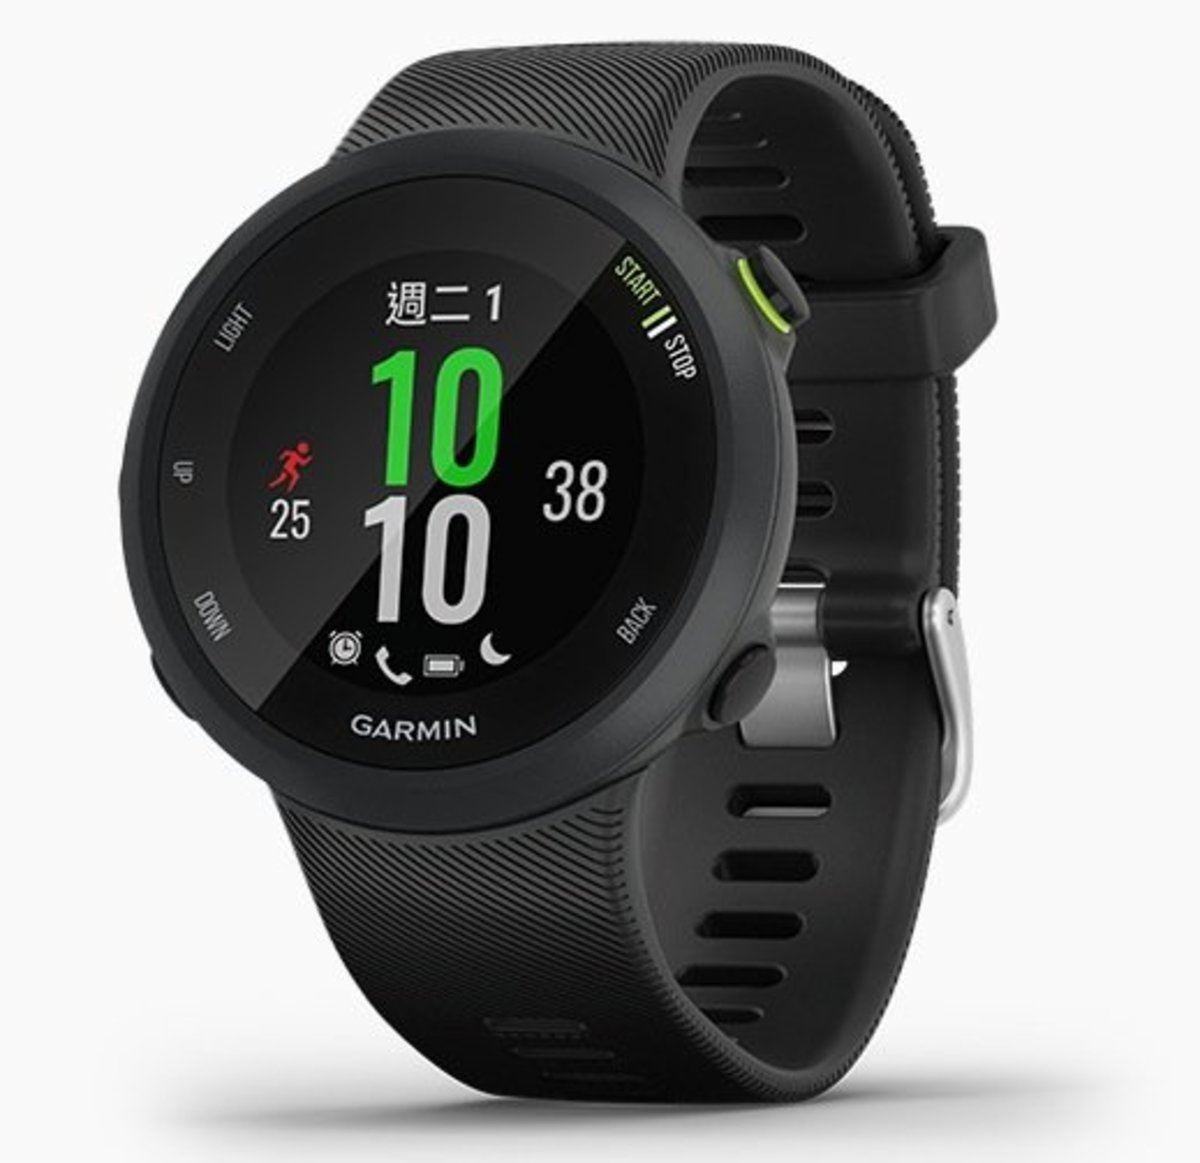 Forerunner 45 GPS Smart Running Watch[Traditional Chinese/English][Black][Large Size]